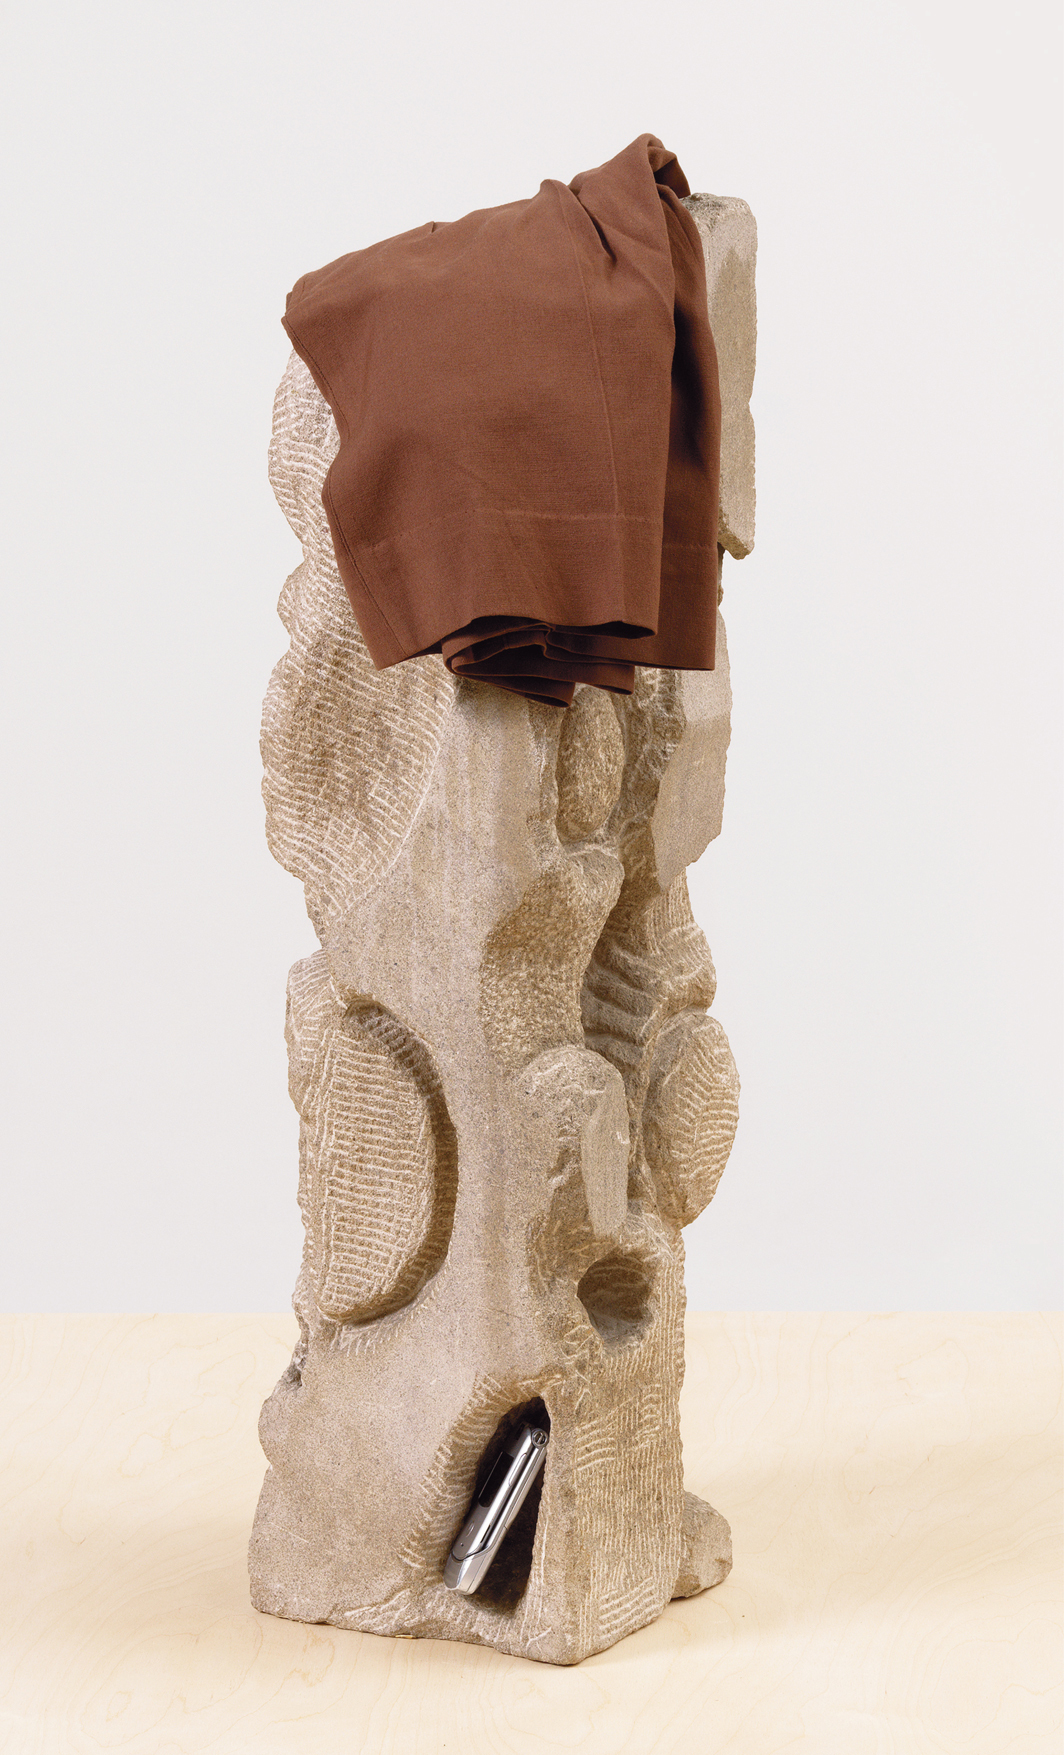 "Arnold J. Kemp, Nineteen Eighty-Four, 2020, limestone, tailored shorts made by the artist's grandfather (Arnold J. Kemp), flip phone from a performance featuring the artist's father (Howard J. Kemp), 31 × 8 1⁄4 × 8 1⁄4""."